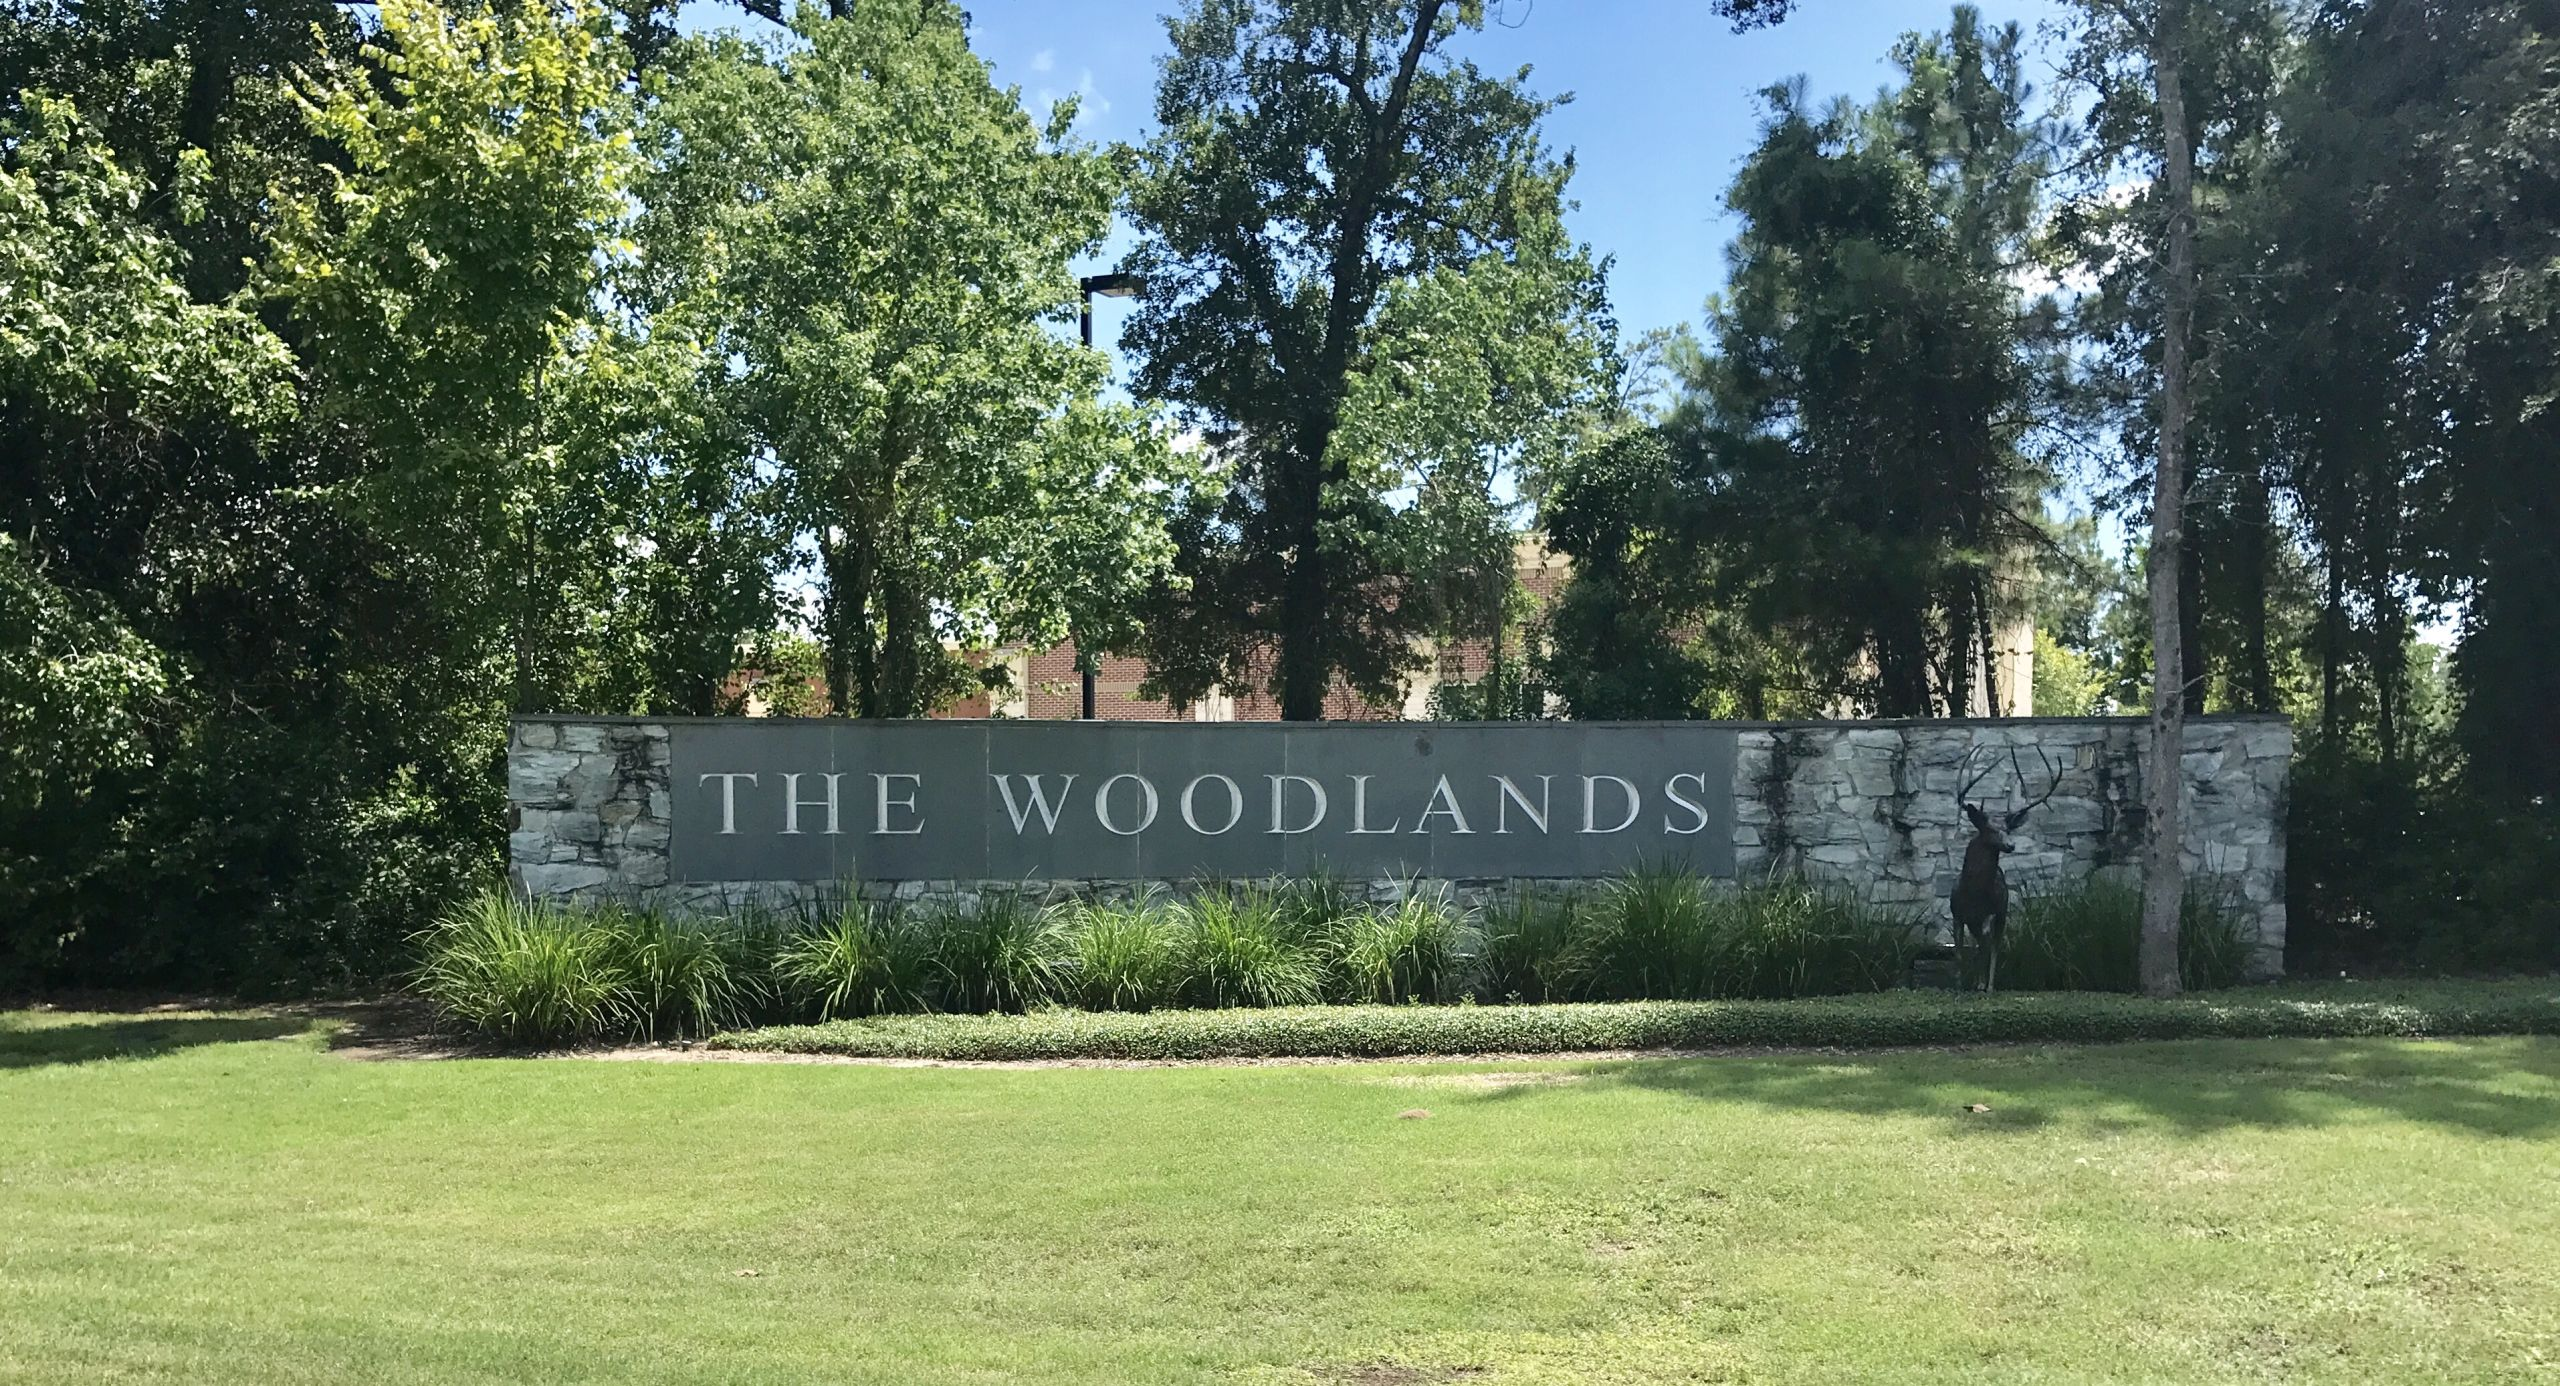 Welcome to The Woodlands!